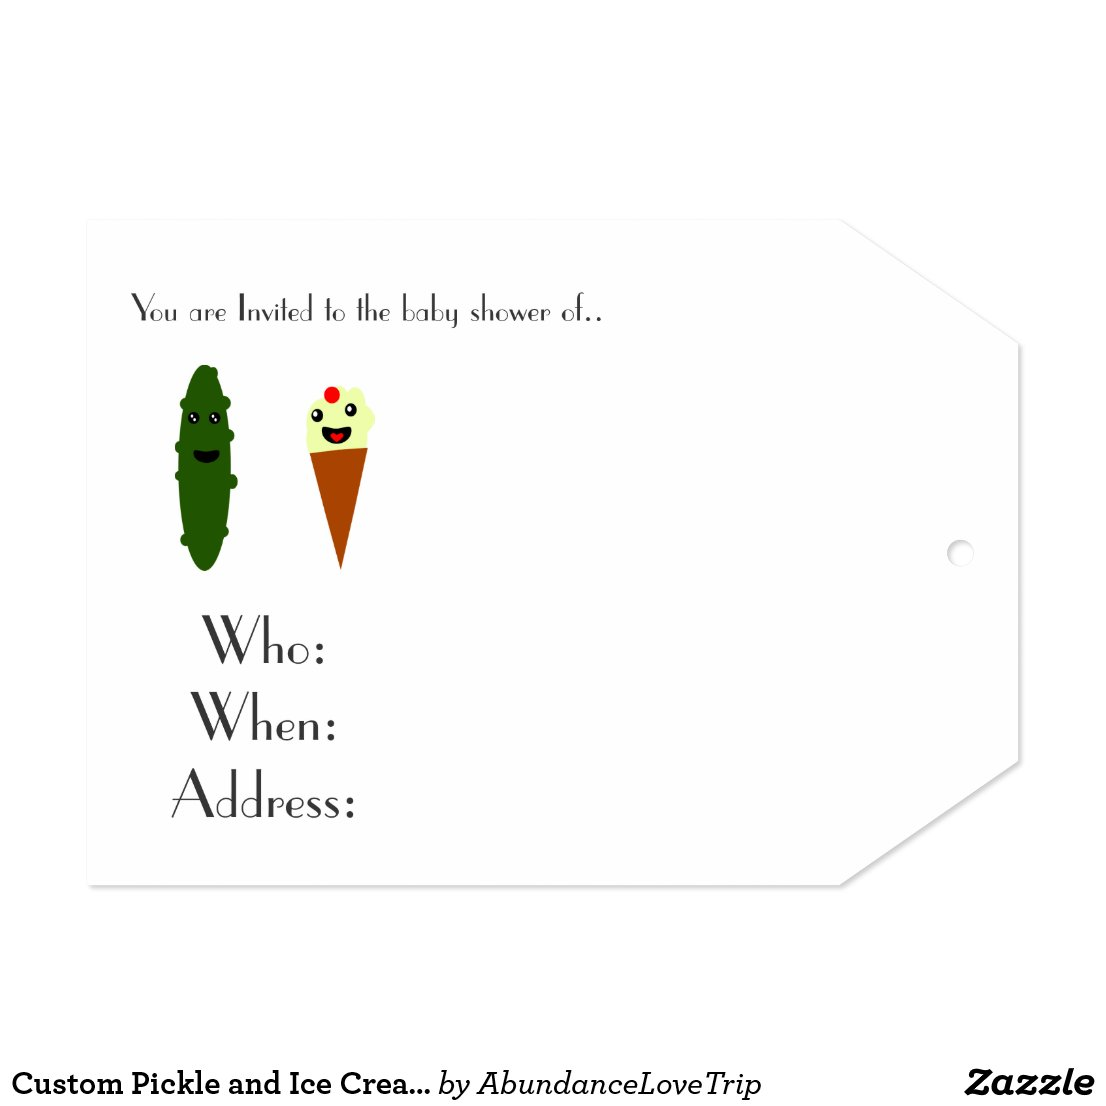 Custom Pickle and Ice Cream Invites